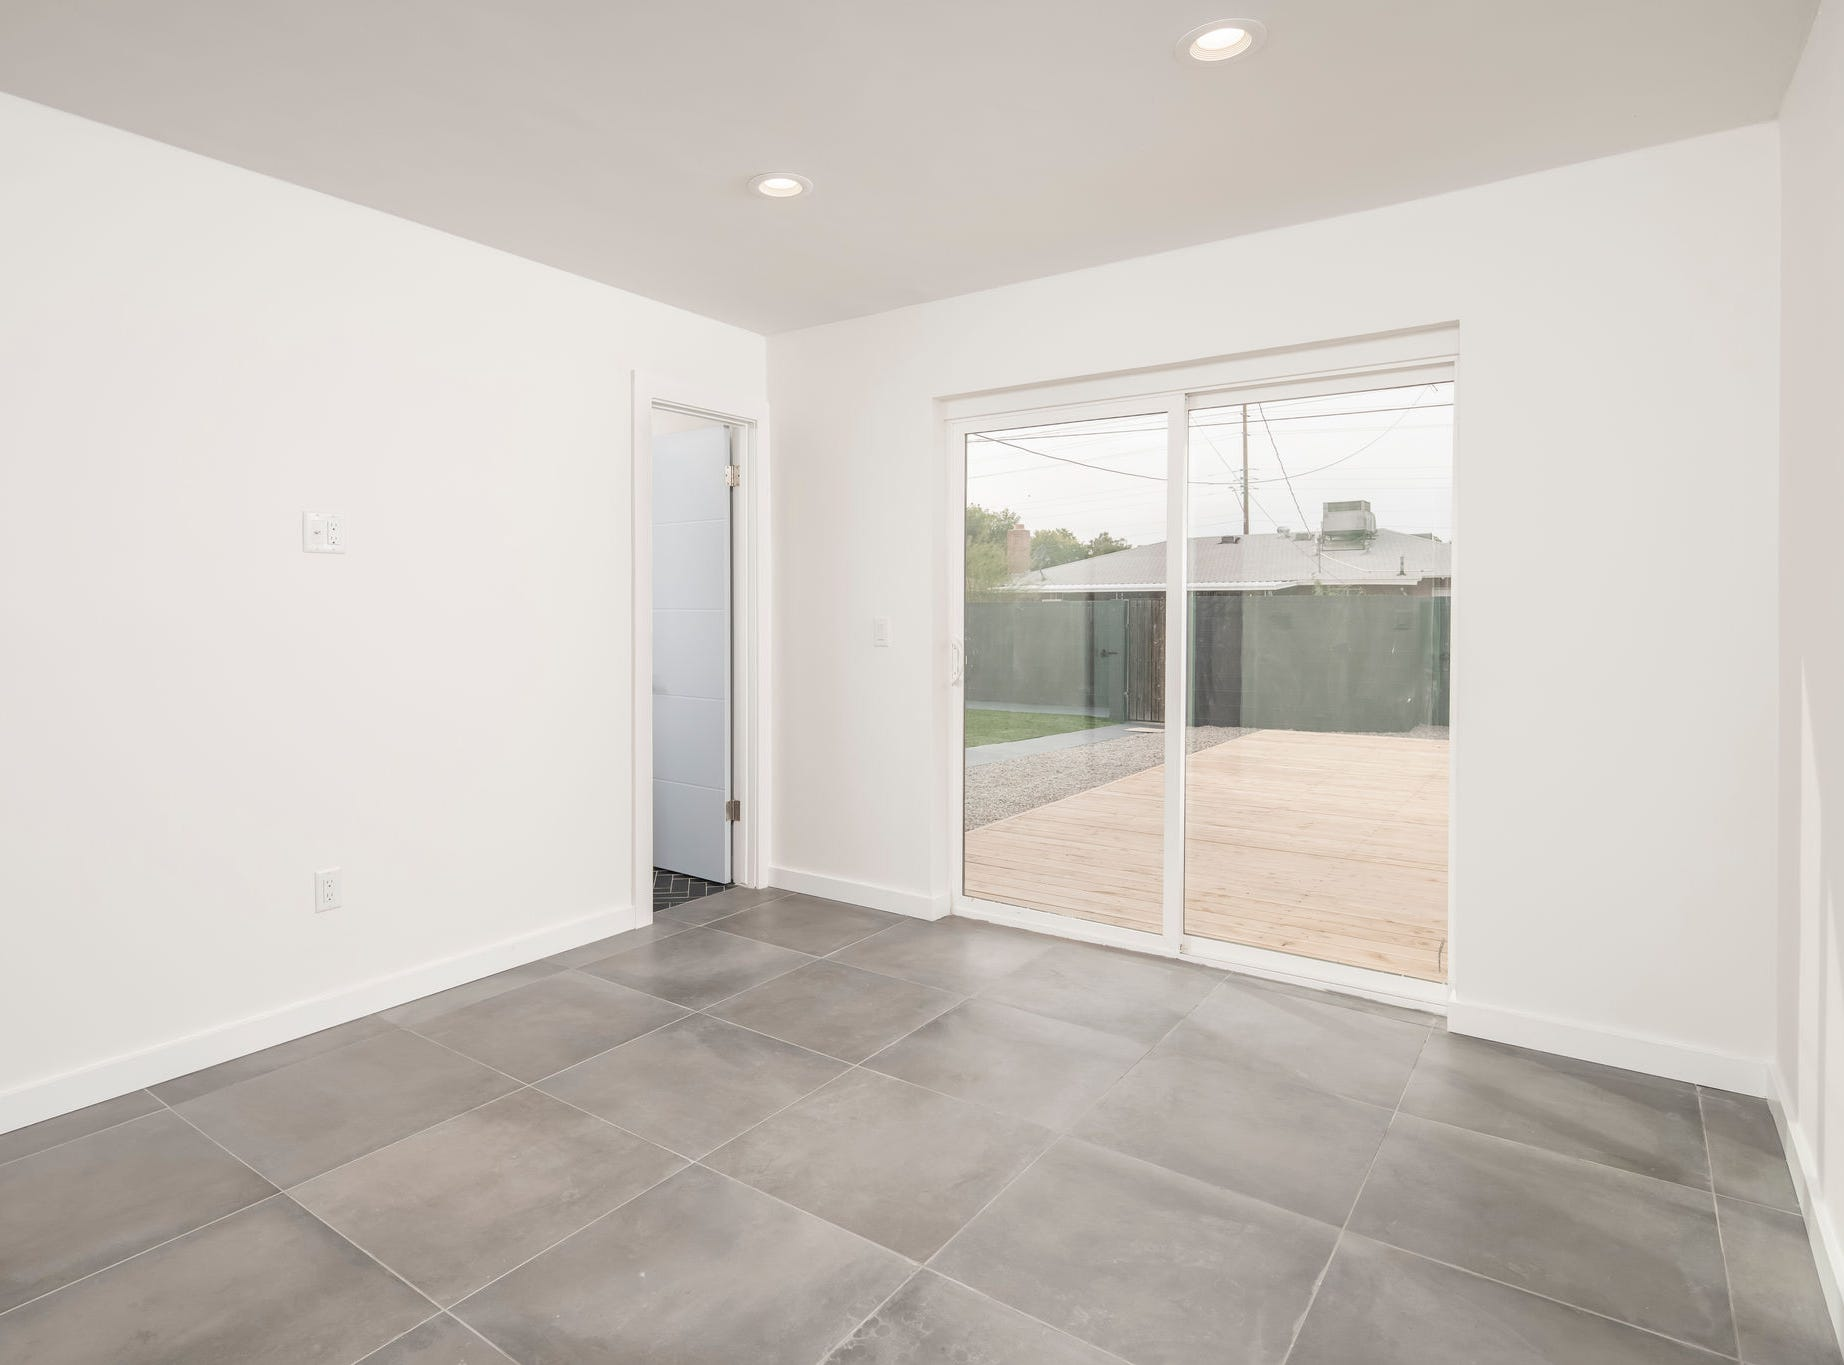 The home features three bedrooms and two bathrooms.